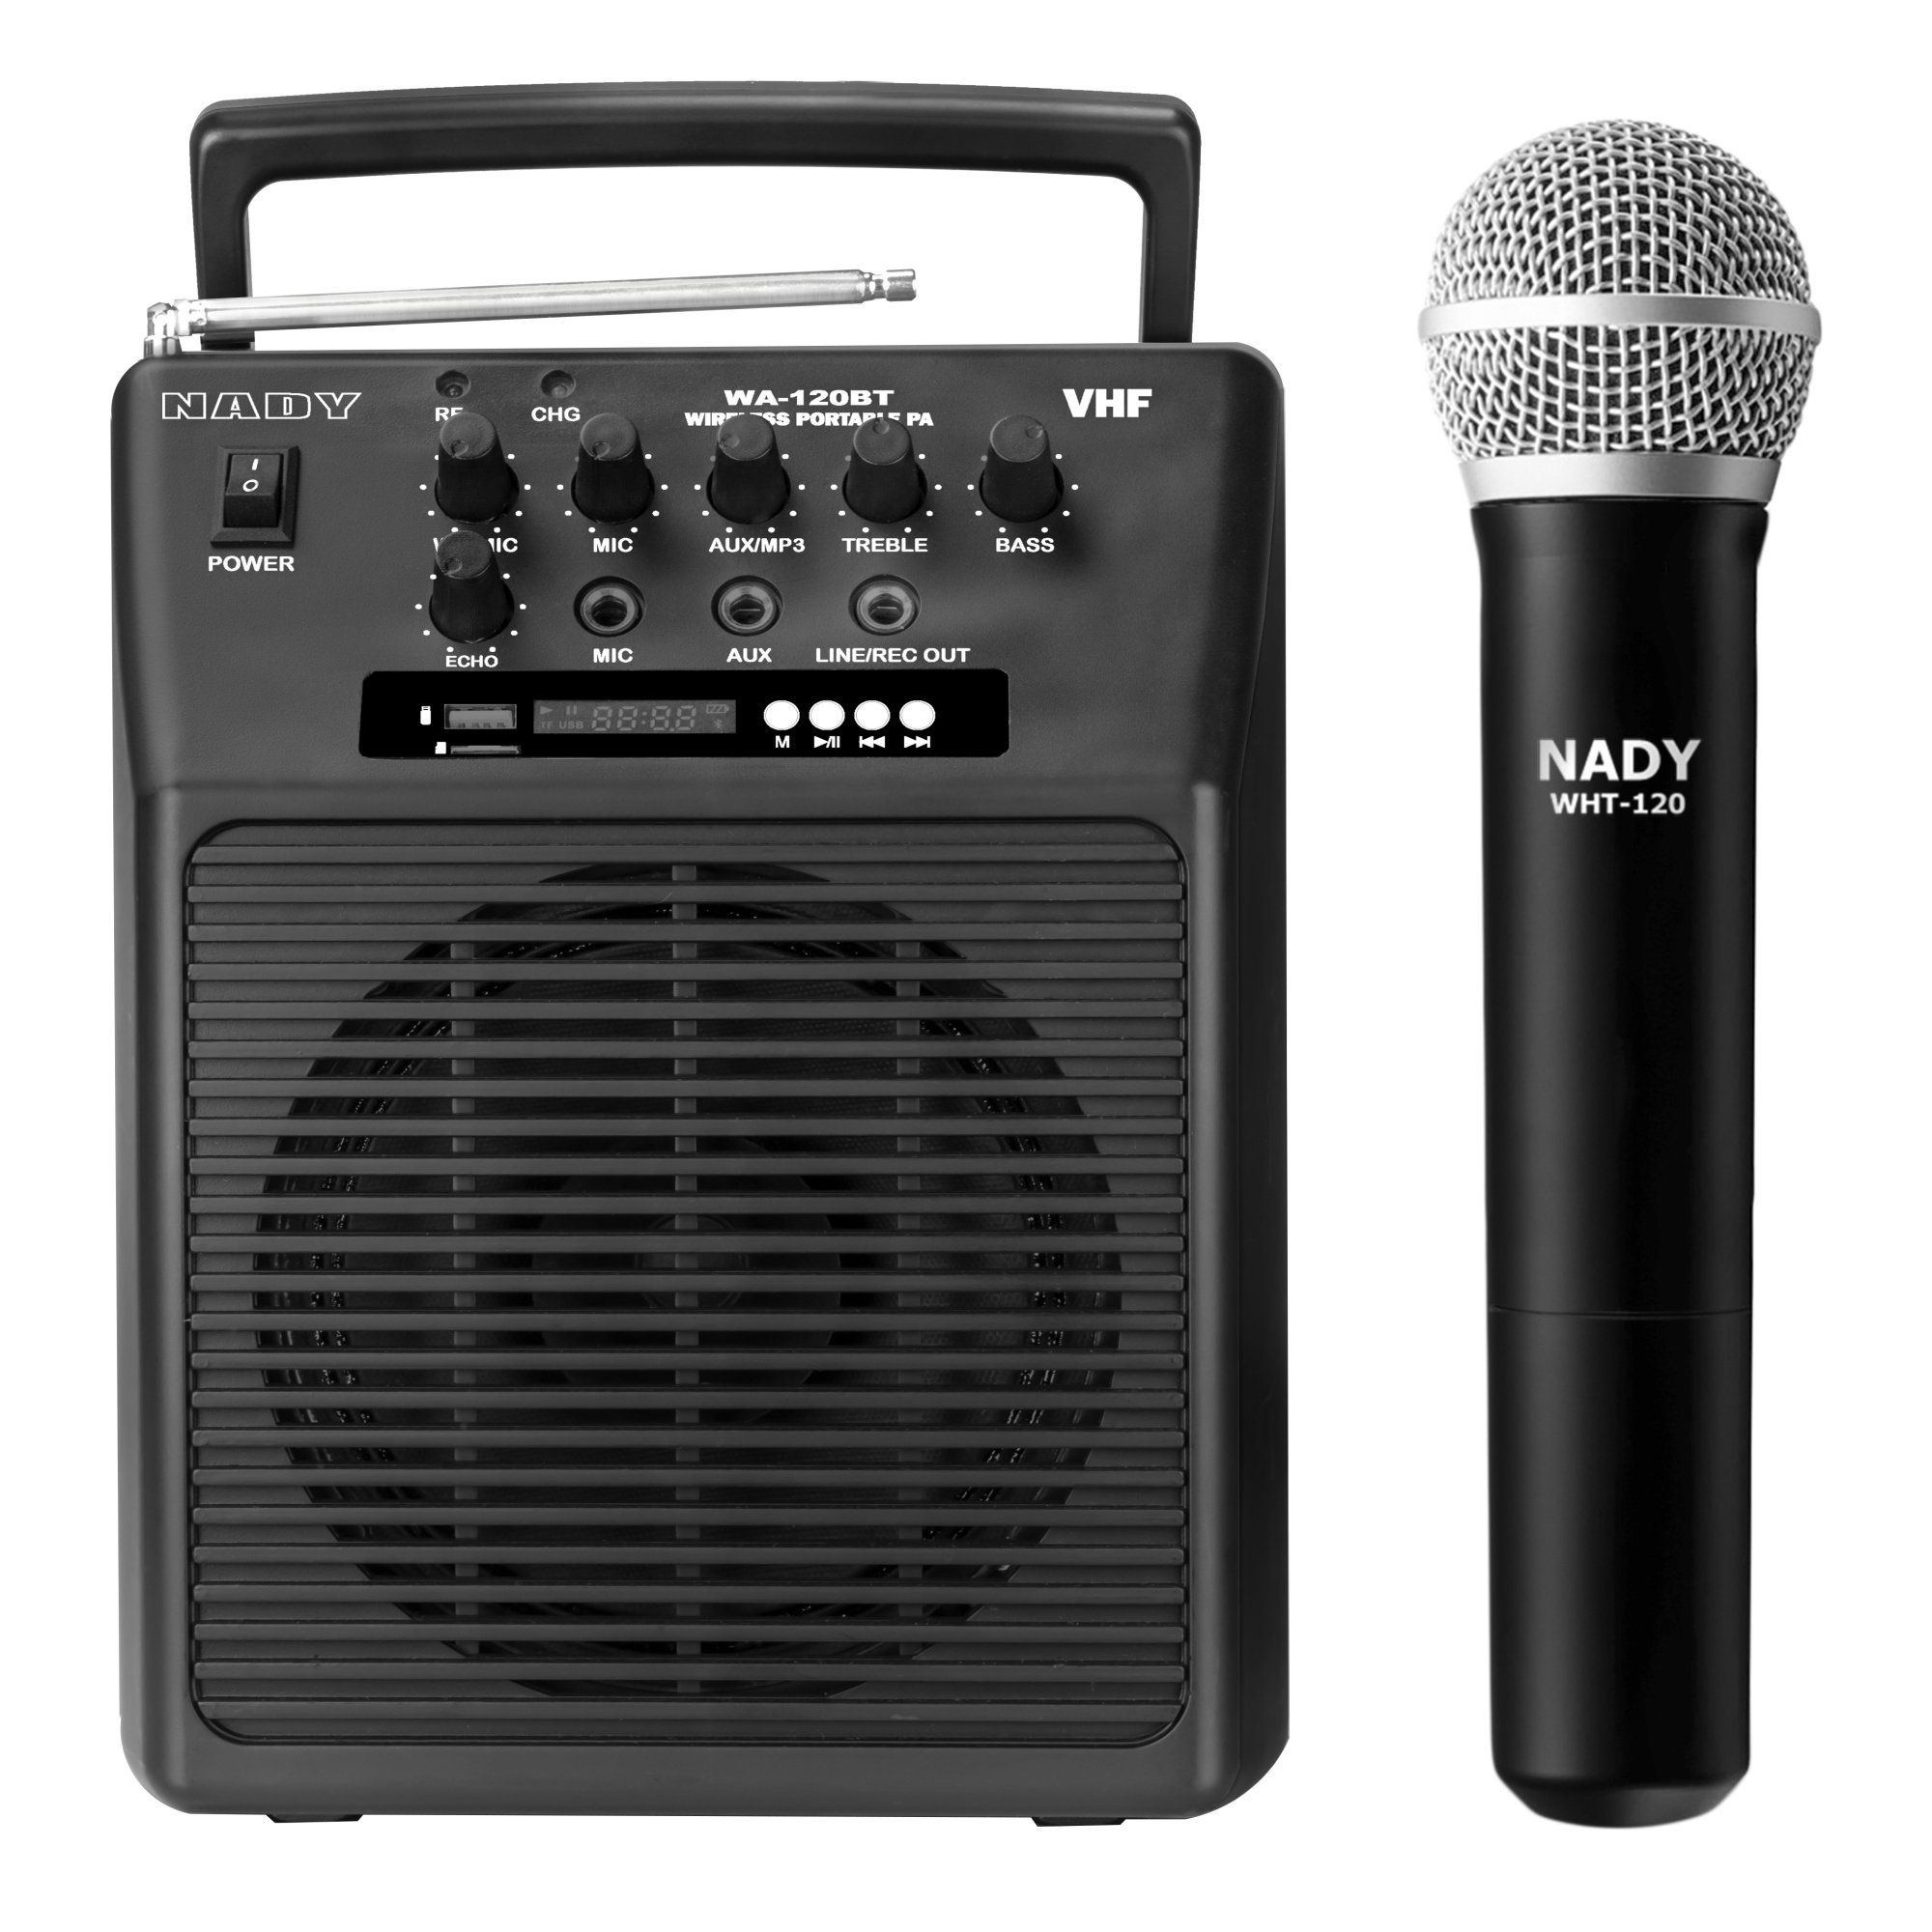 Nady WA-120BT HT Wireless Portable compact P.A full-range speaker system with built-in amplifier, BLUETOOTH, mp3 player, mixer, handheld wireless microphone by Nady